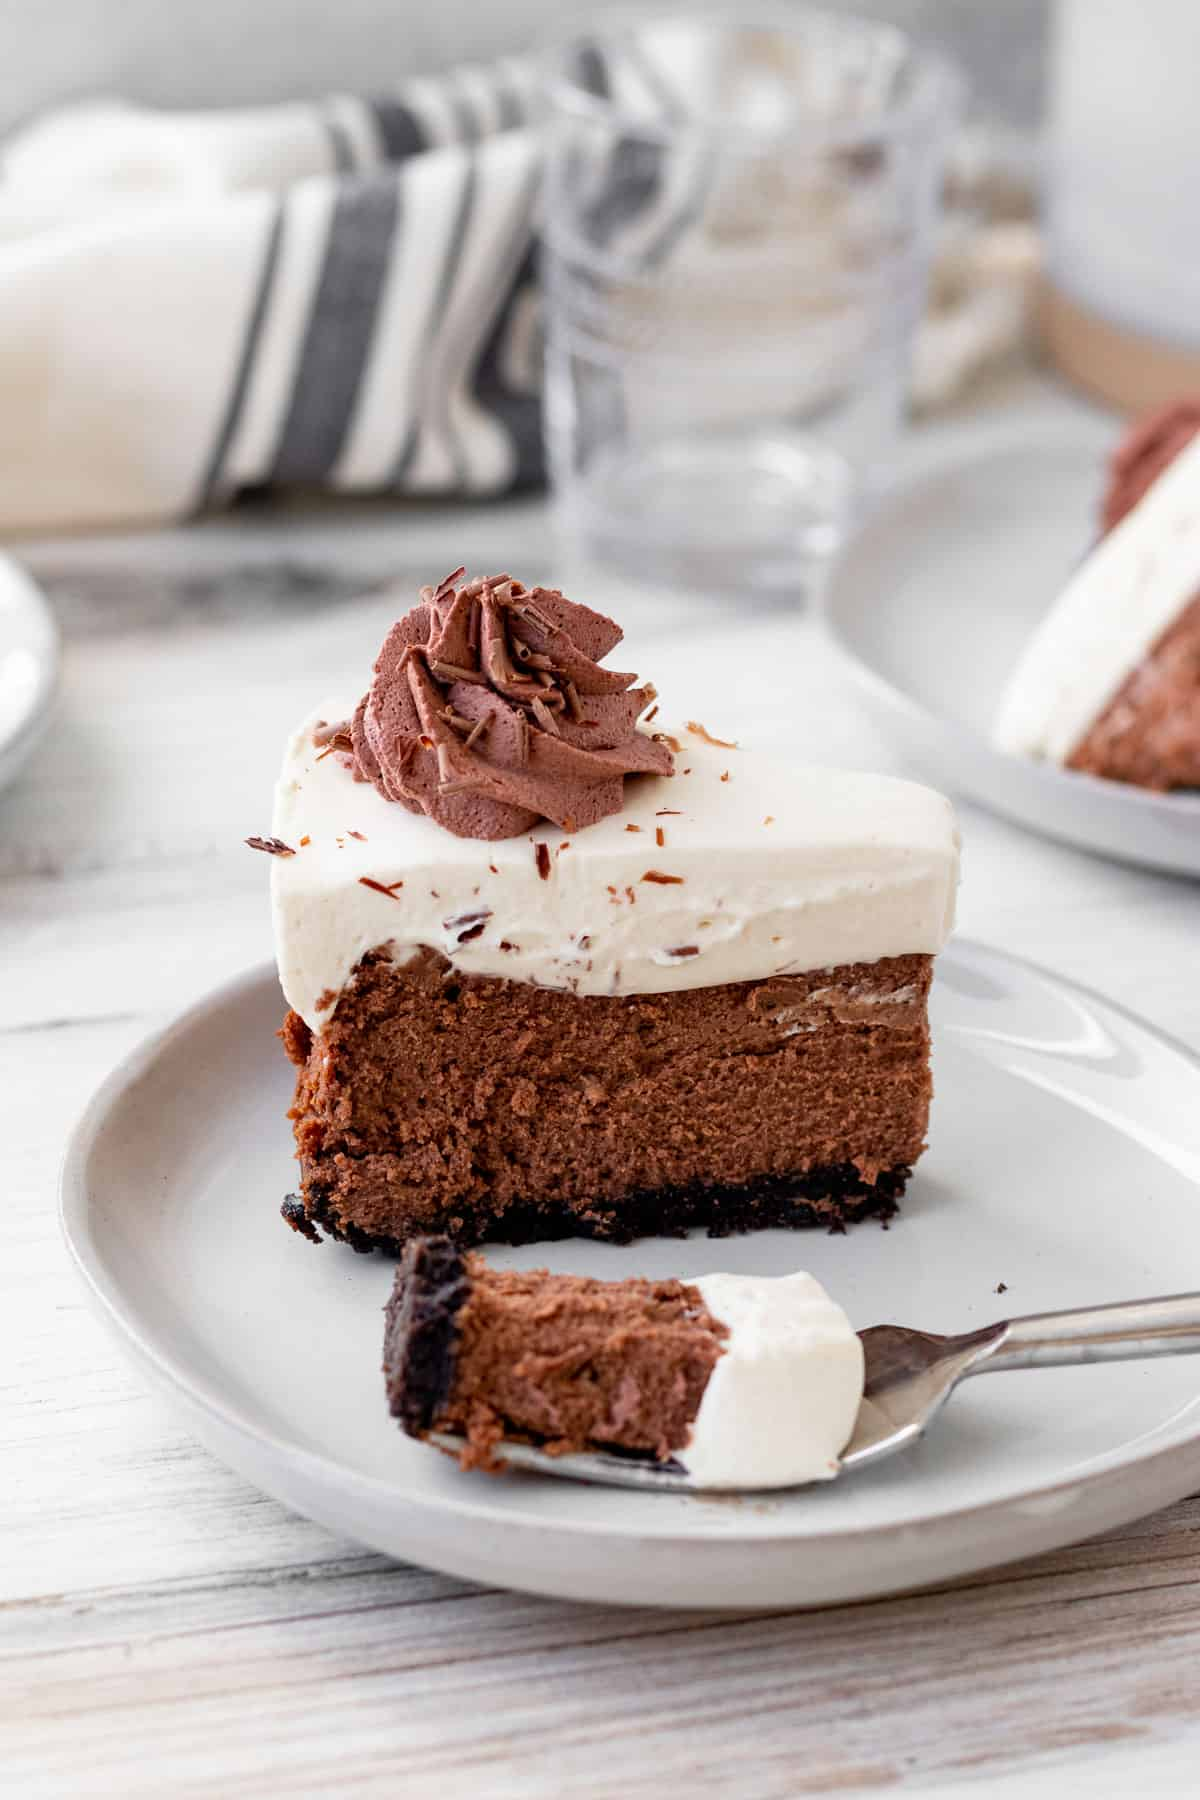 slice of chocolate baileys cheesecake on a plate with bite of the cheesecake on a fork